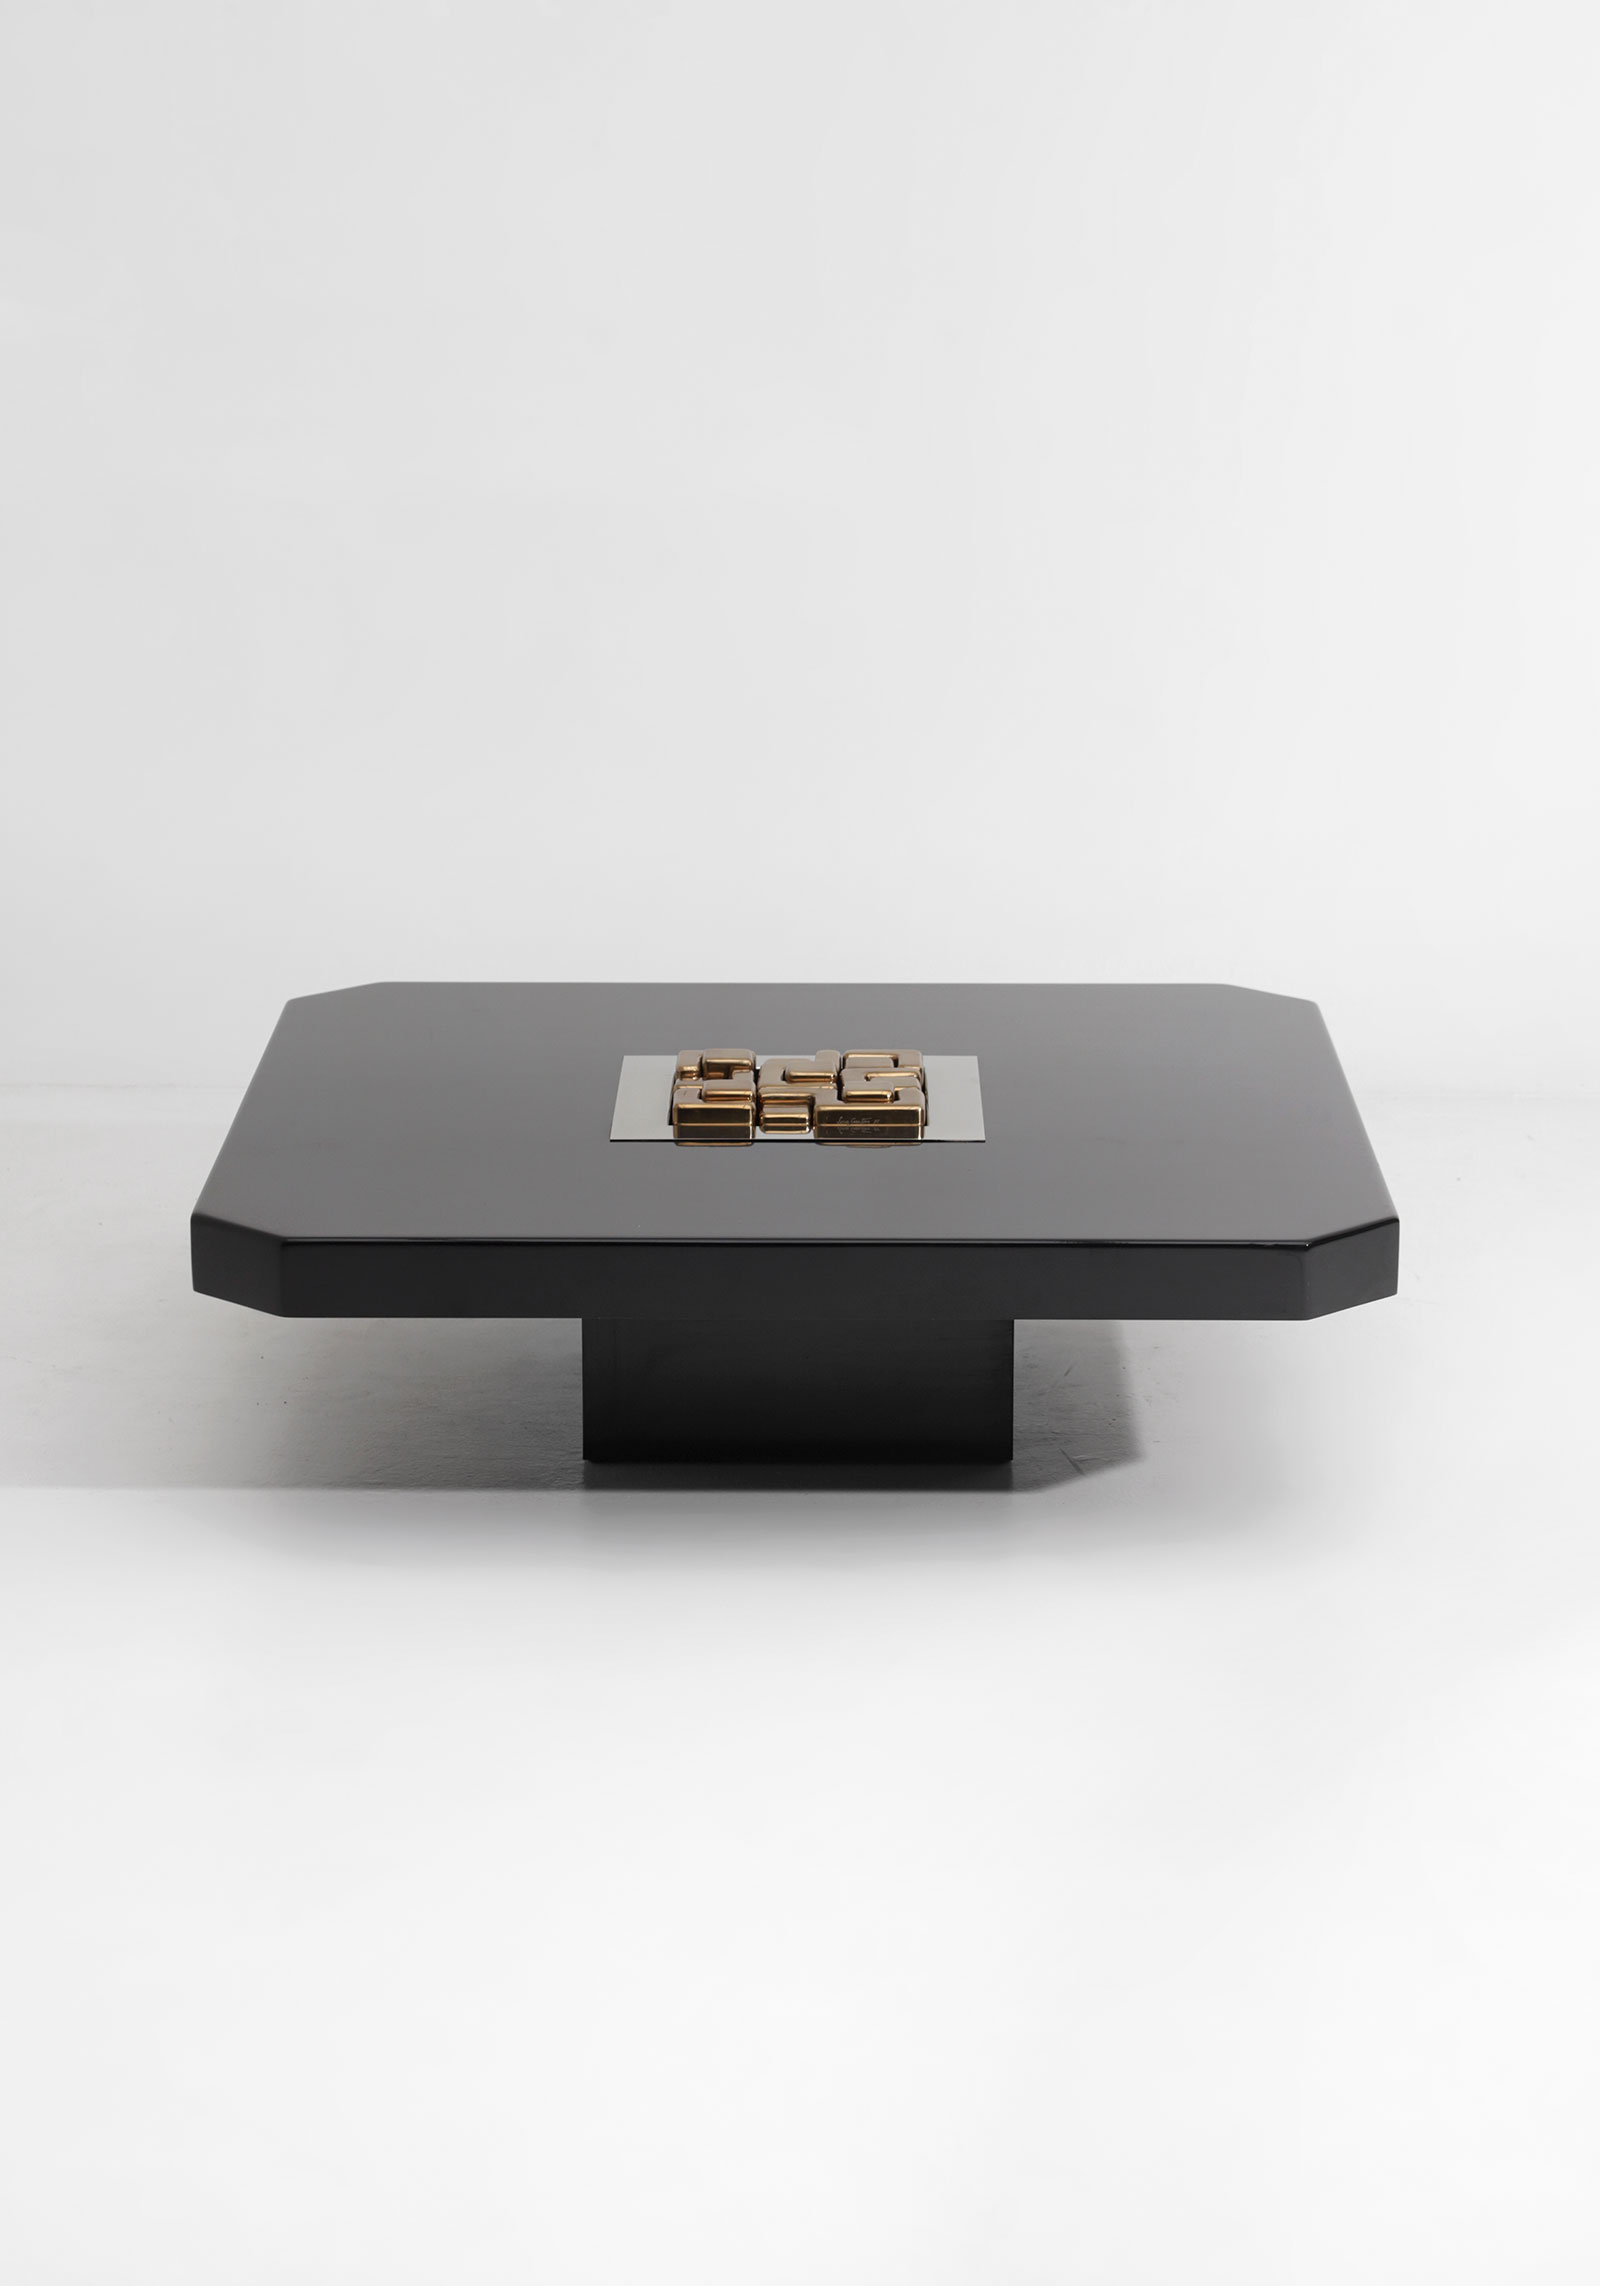 Coffee Table by Lova Creation signed and numberedimage 1